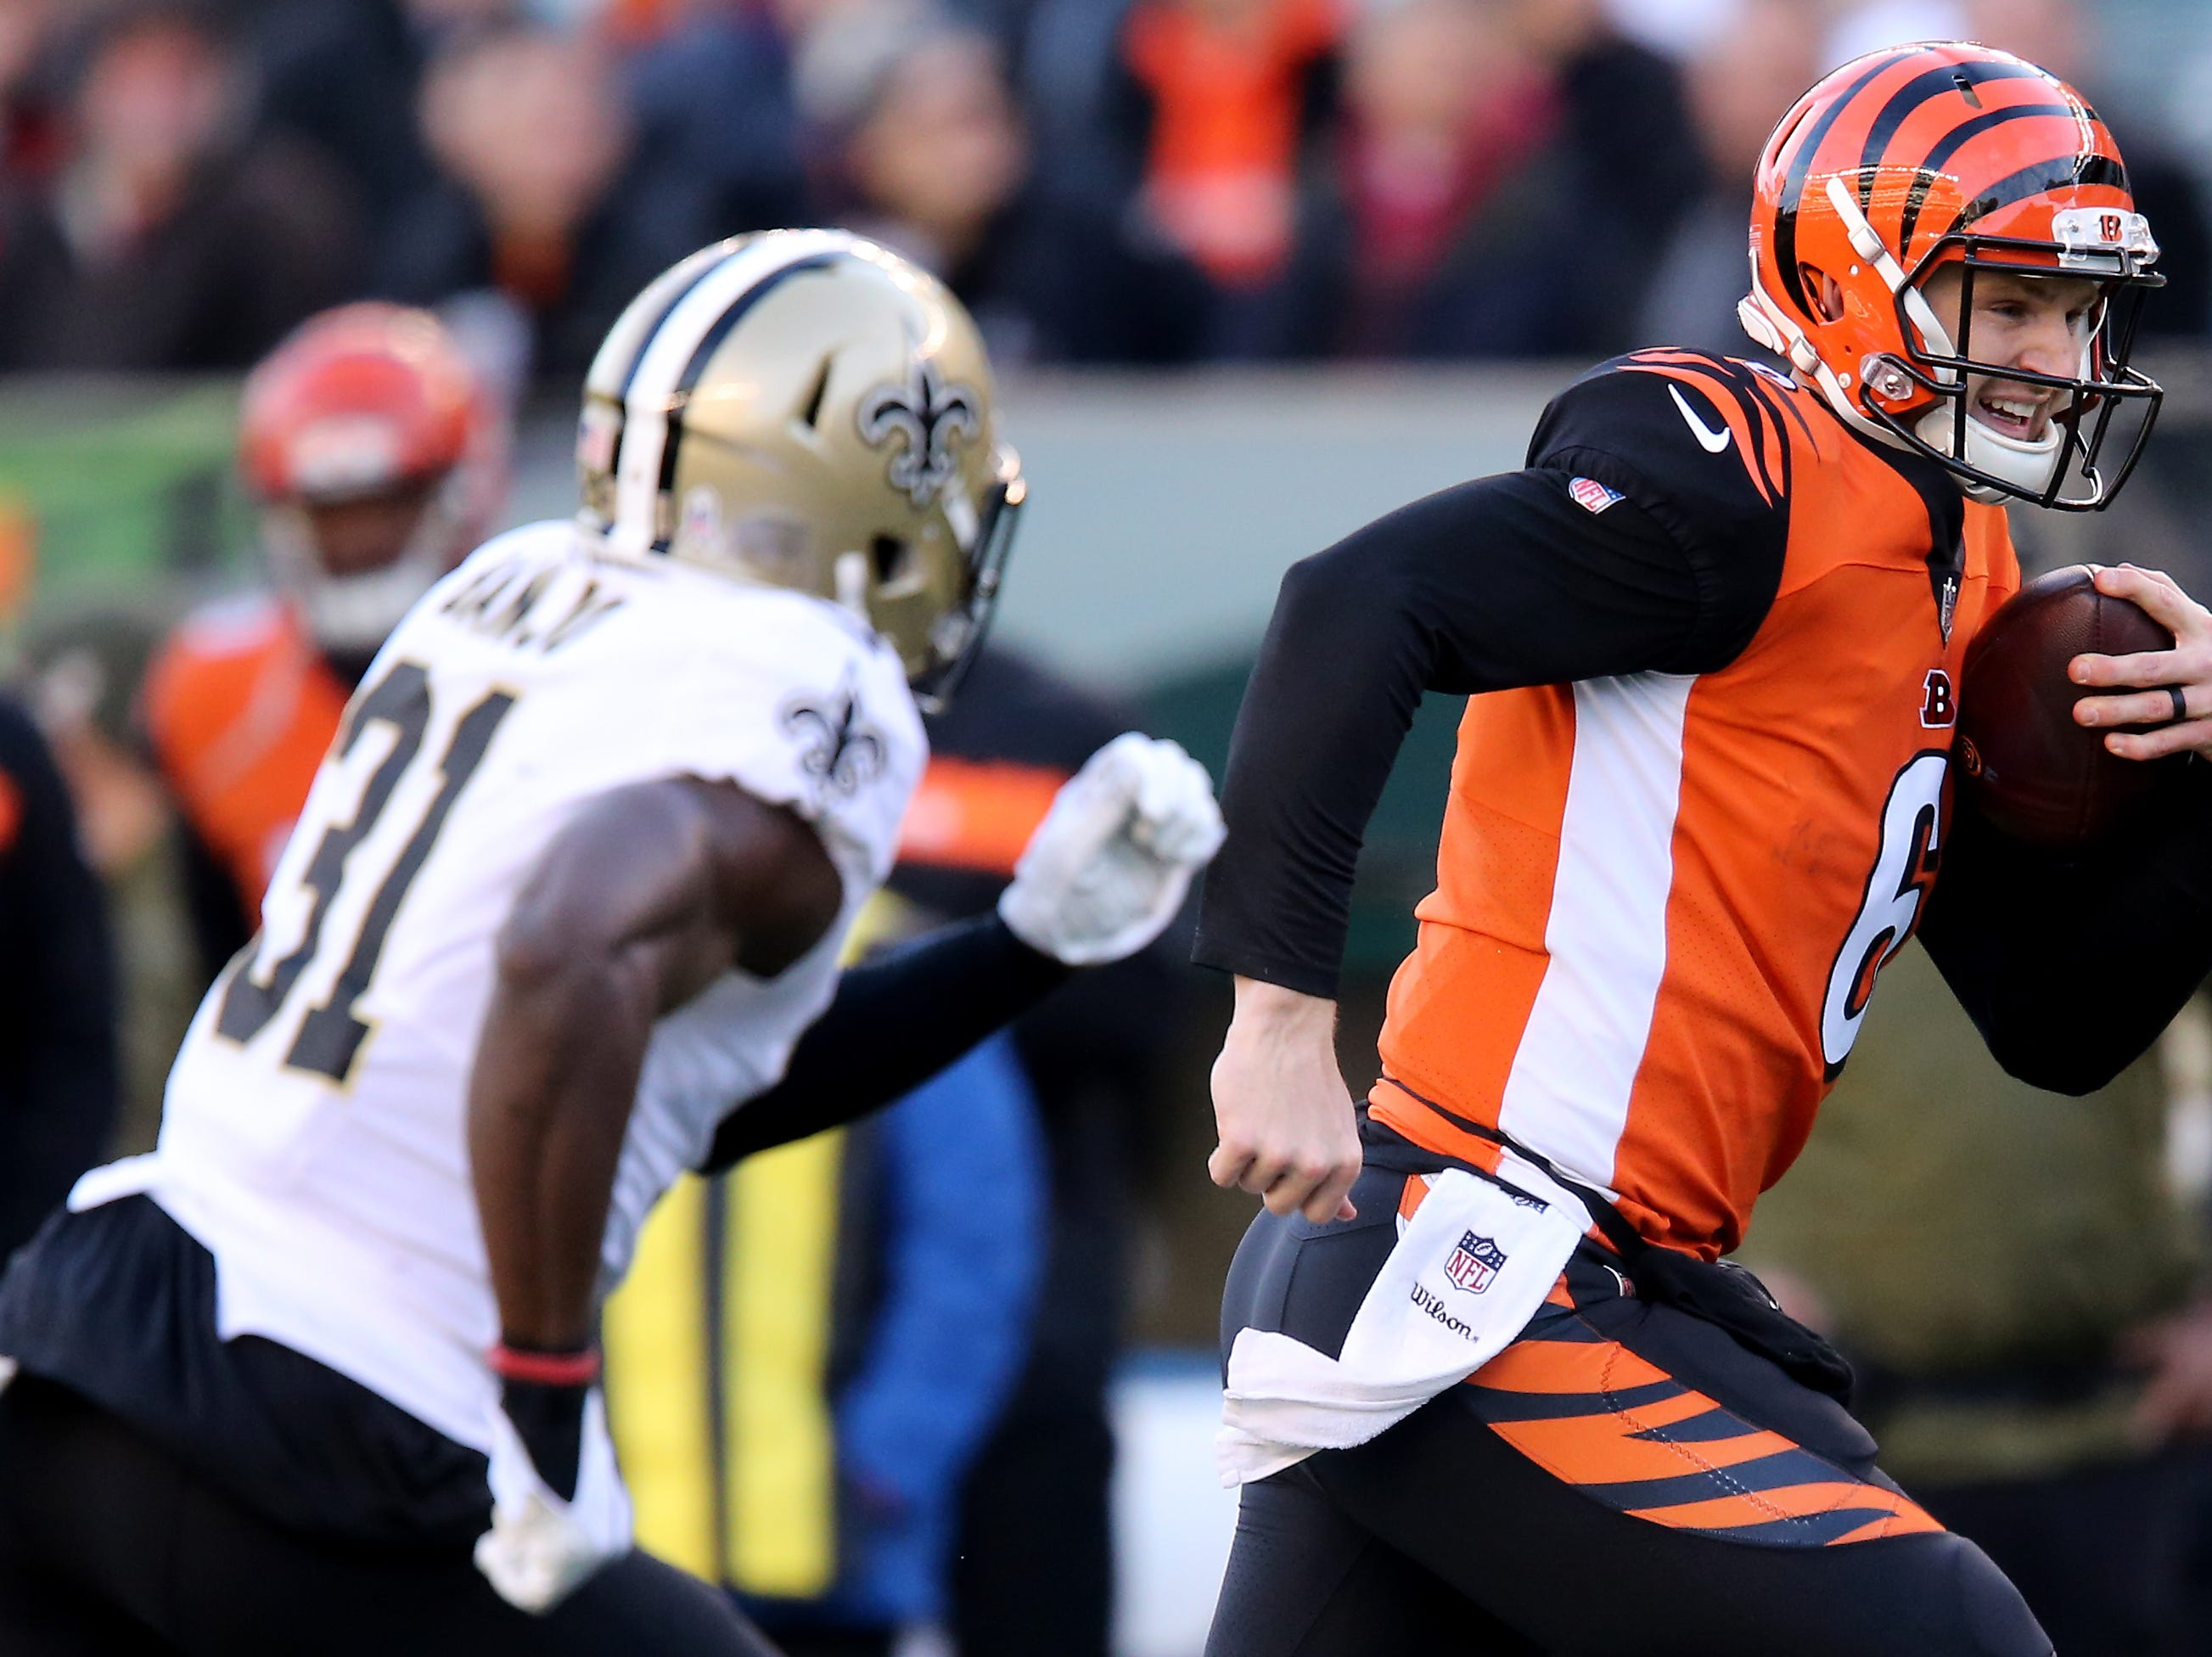 Cincinnati Bengals quarterback Jeff Driskel (6) runs for a touchdown in the fourth quarter of a Week 10 NFL game between the New Orleans Saints and the Cincinnati Bengals, Sunday, Nov. 11, 2018, at Paul Brown Stadium in Cincinnati. The New Orleans Saints won 51-14.